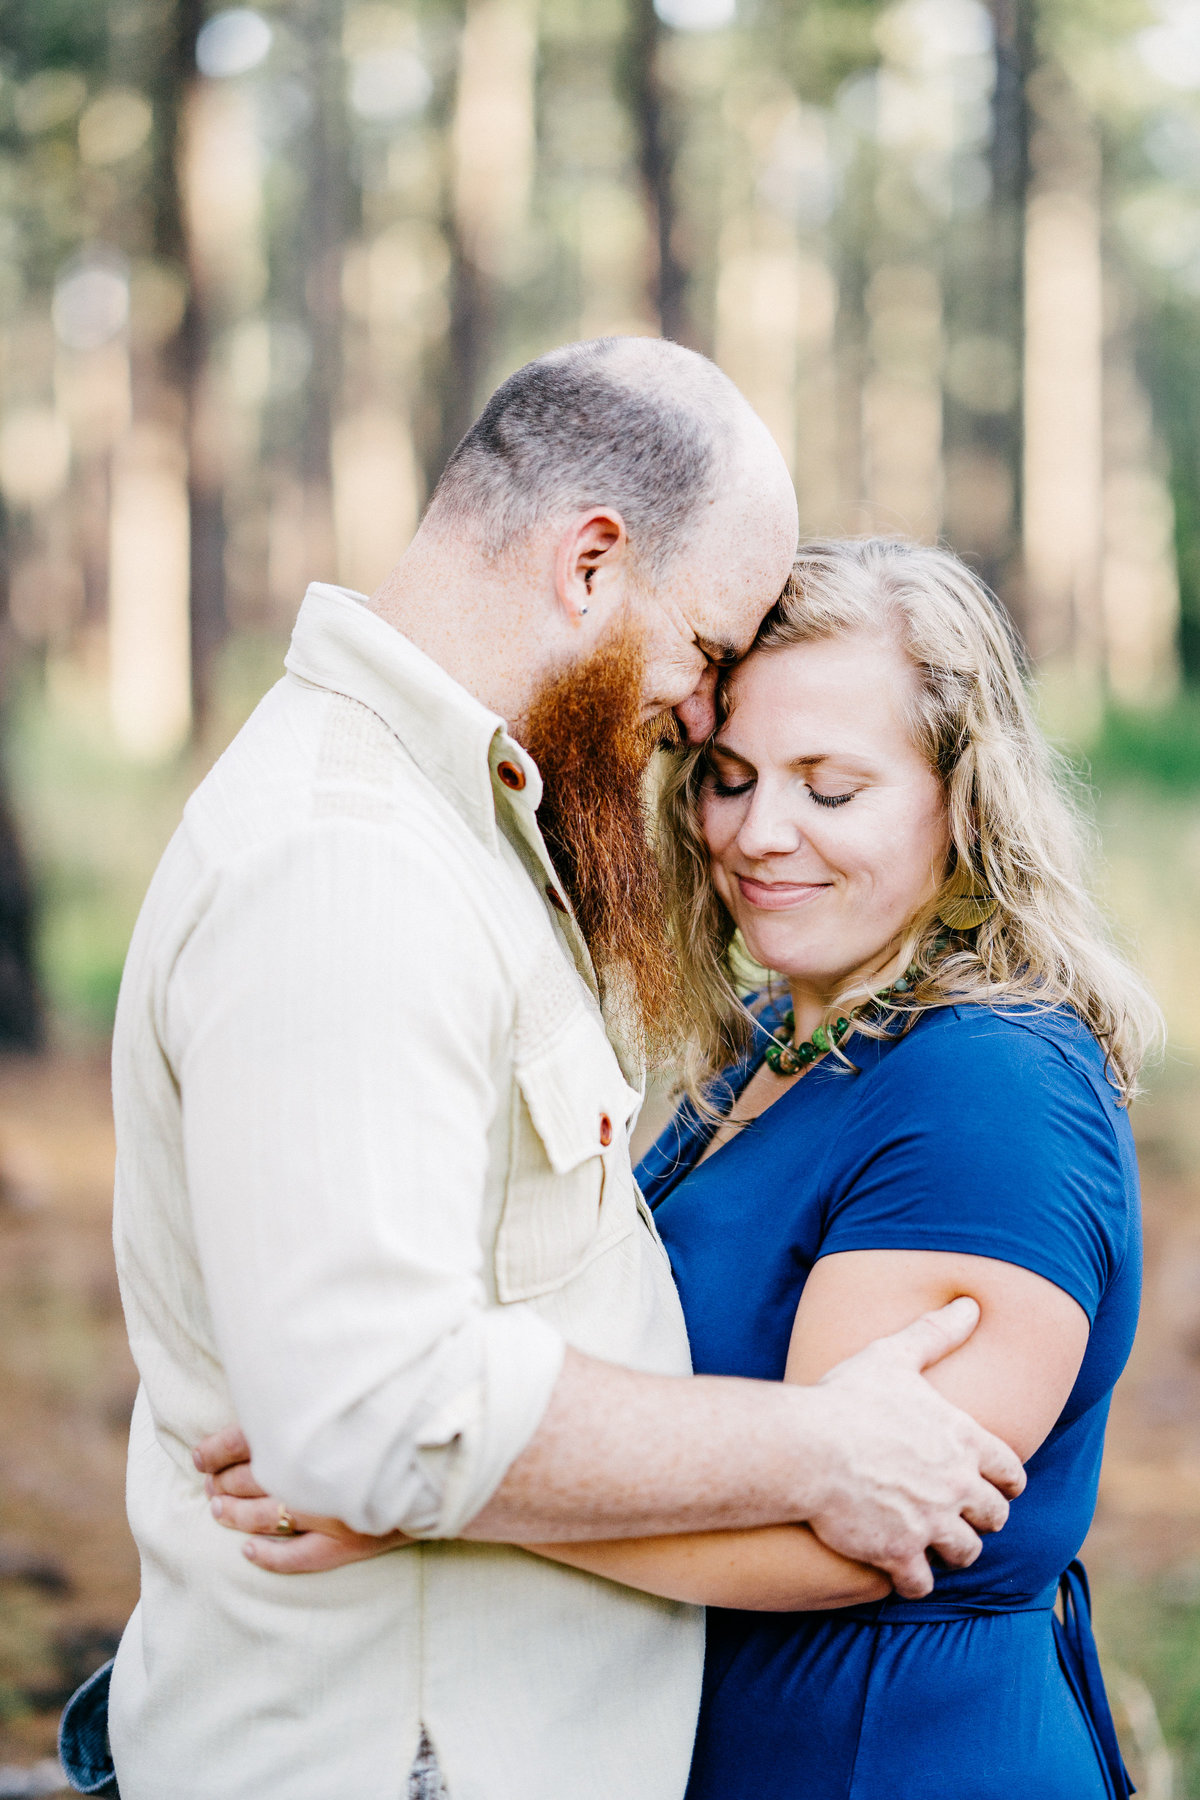 Kathy+Jonah_DukeForestPortraitSession-18